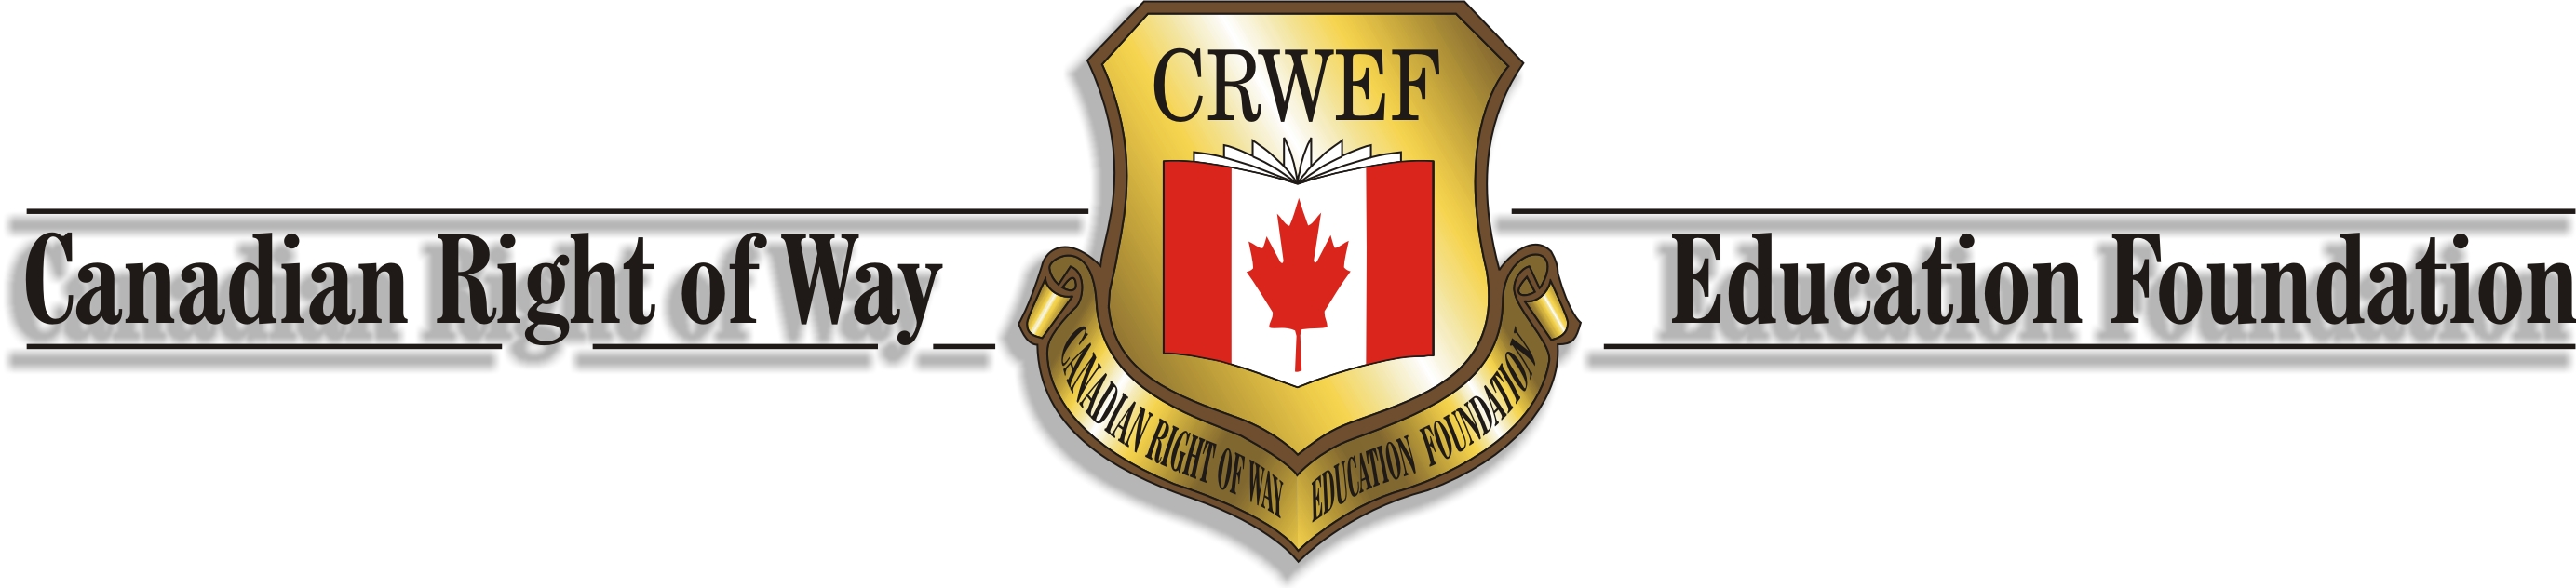 CRWEF Canadian Right of Way Education Foundation